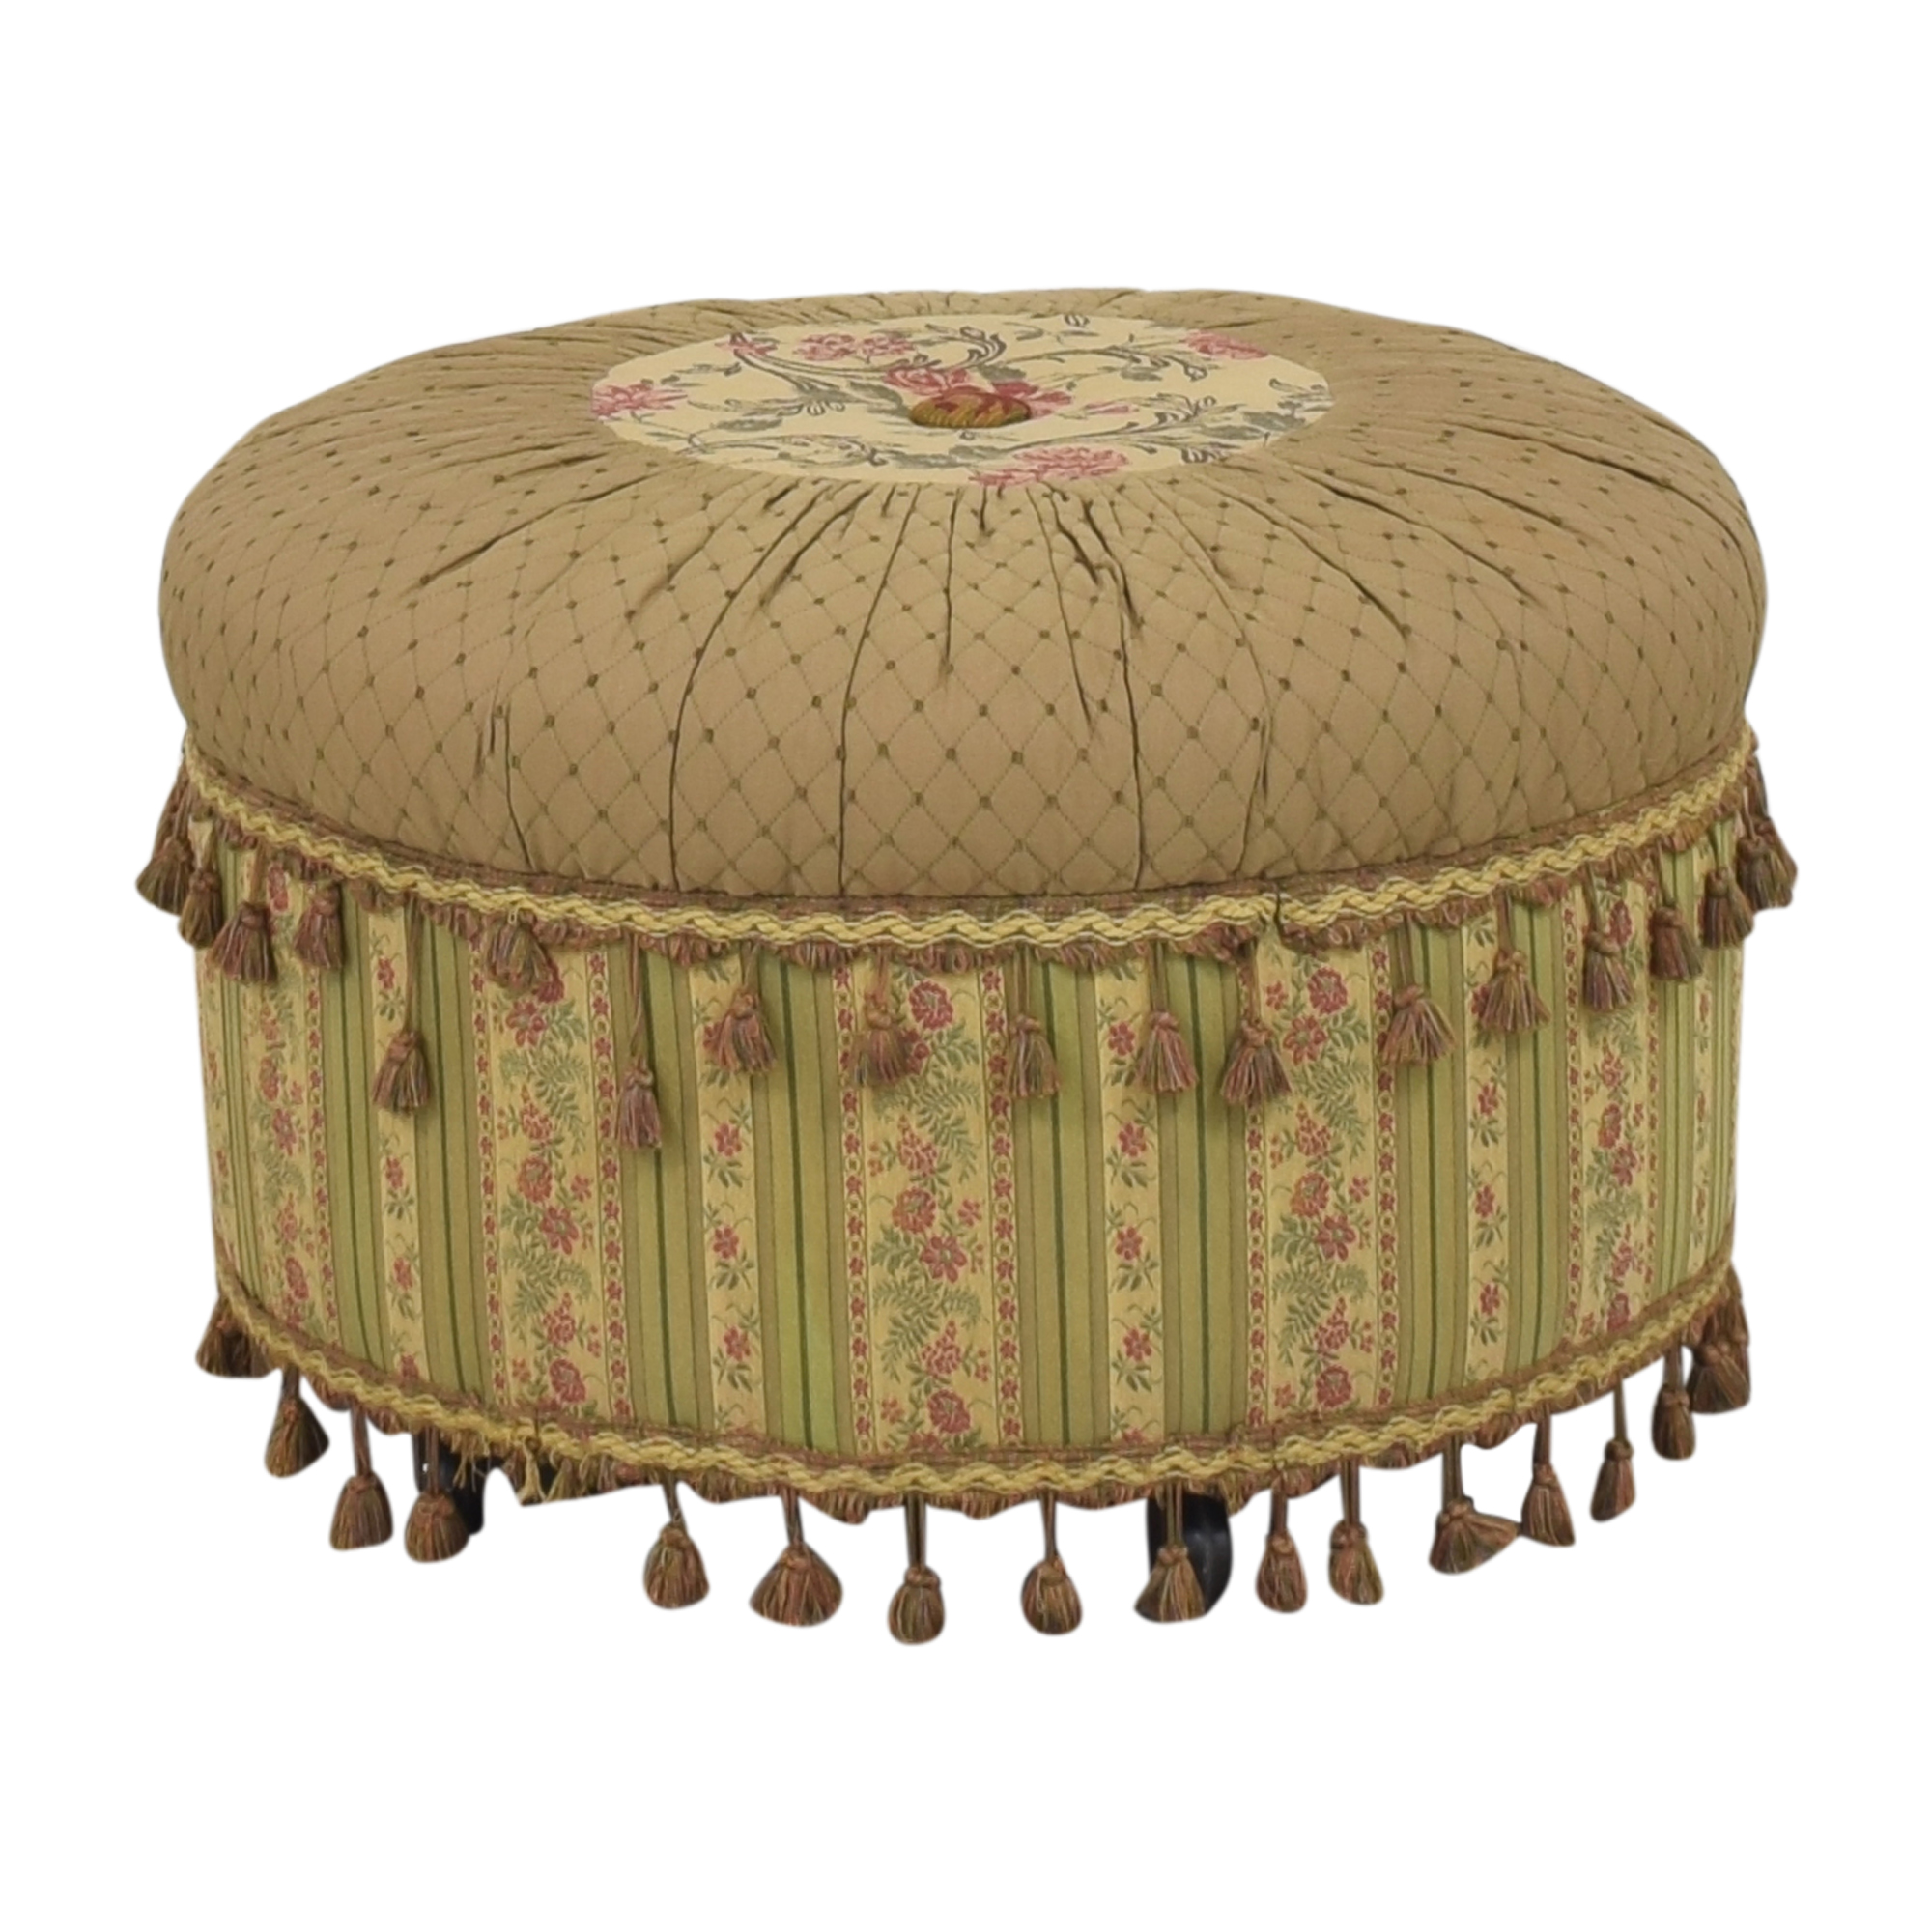 Domain Domain Rolling Fringed Ottoman used